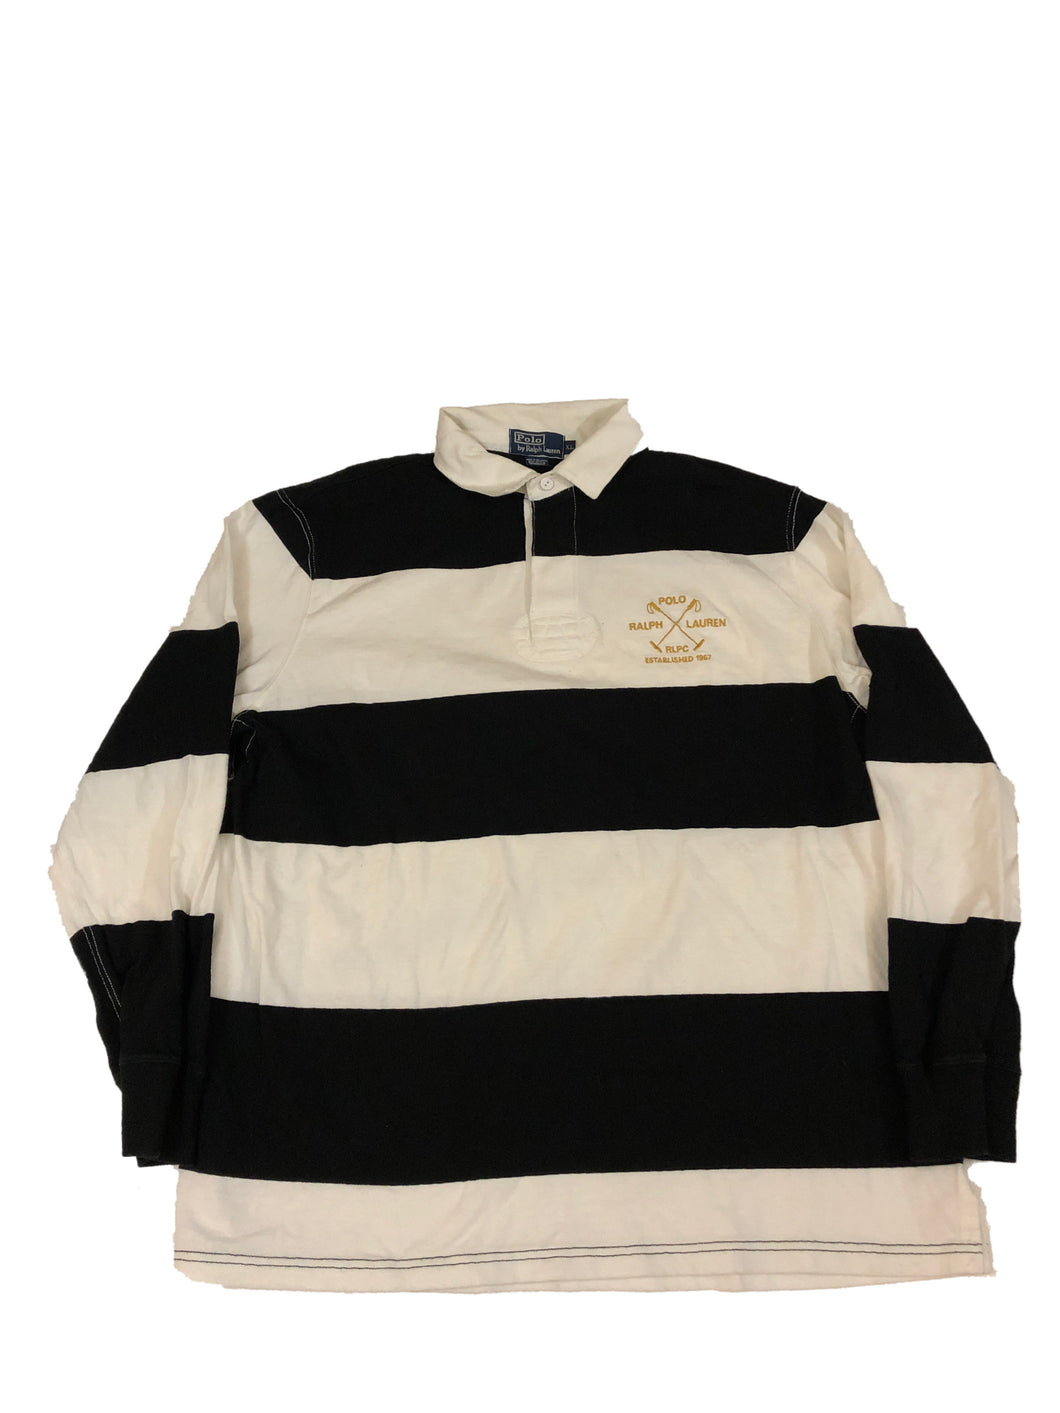 Polo Ralph Lauren Rugby